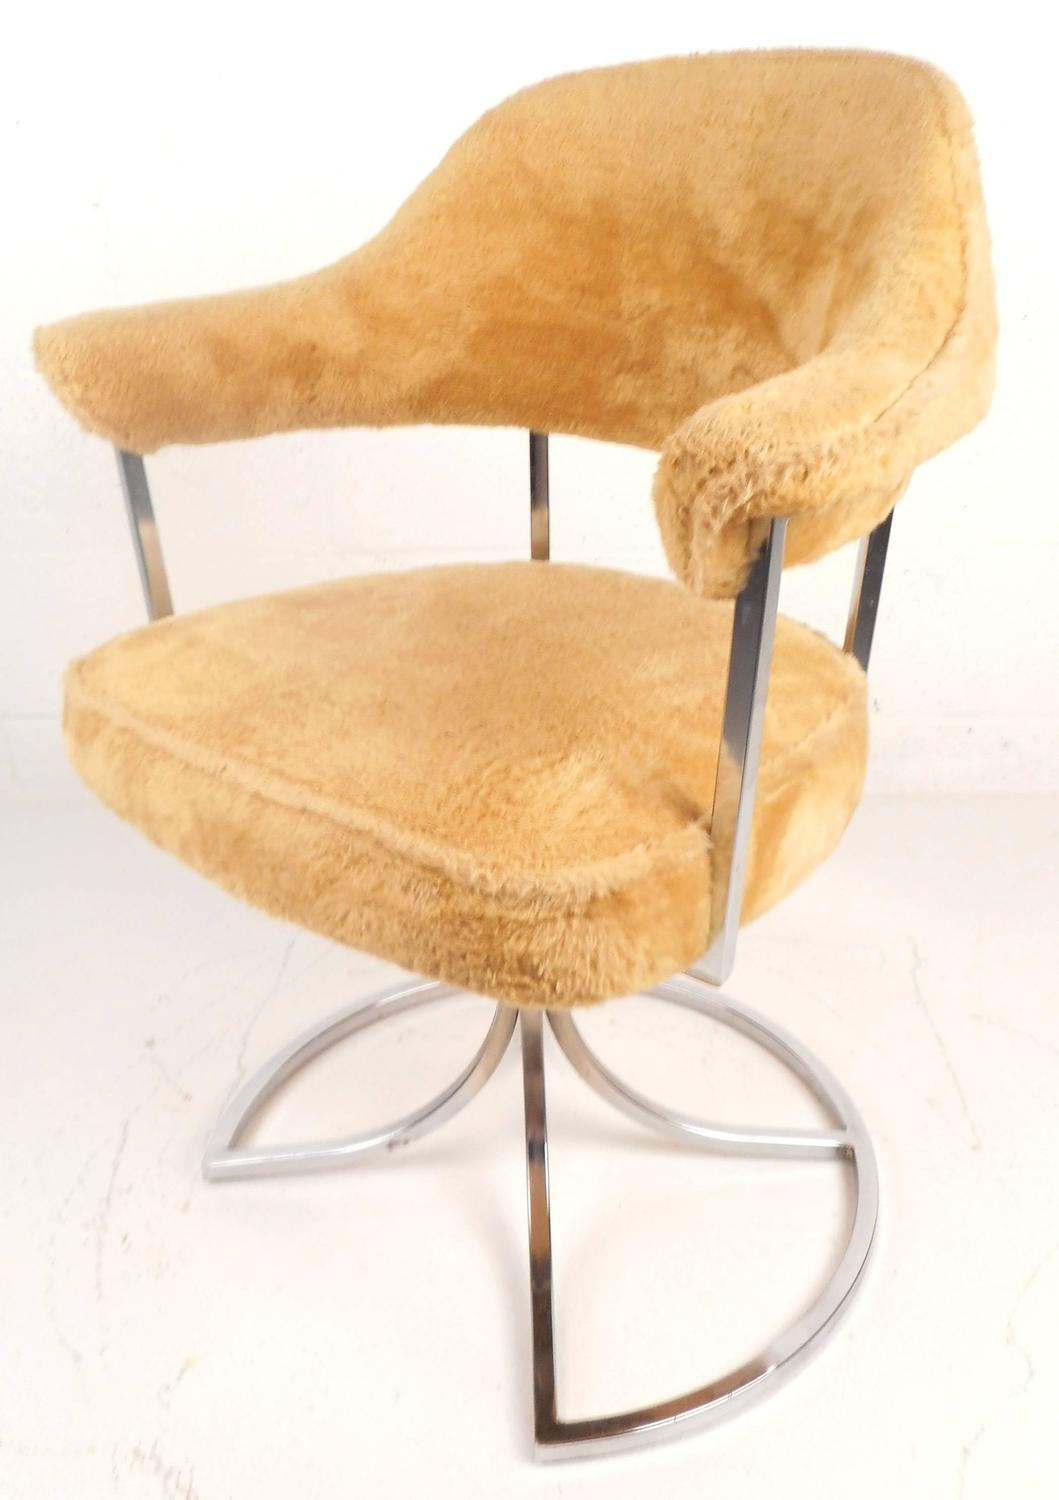 Stylish mid century modern swivel tulip chairs by cal style furniture for sale at 1stdibs - Tulip chairs for sale ...